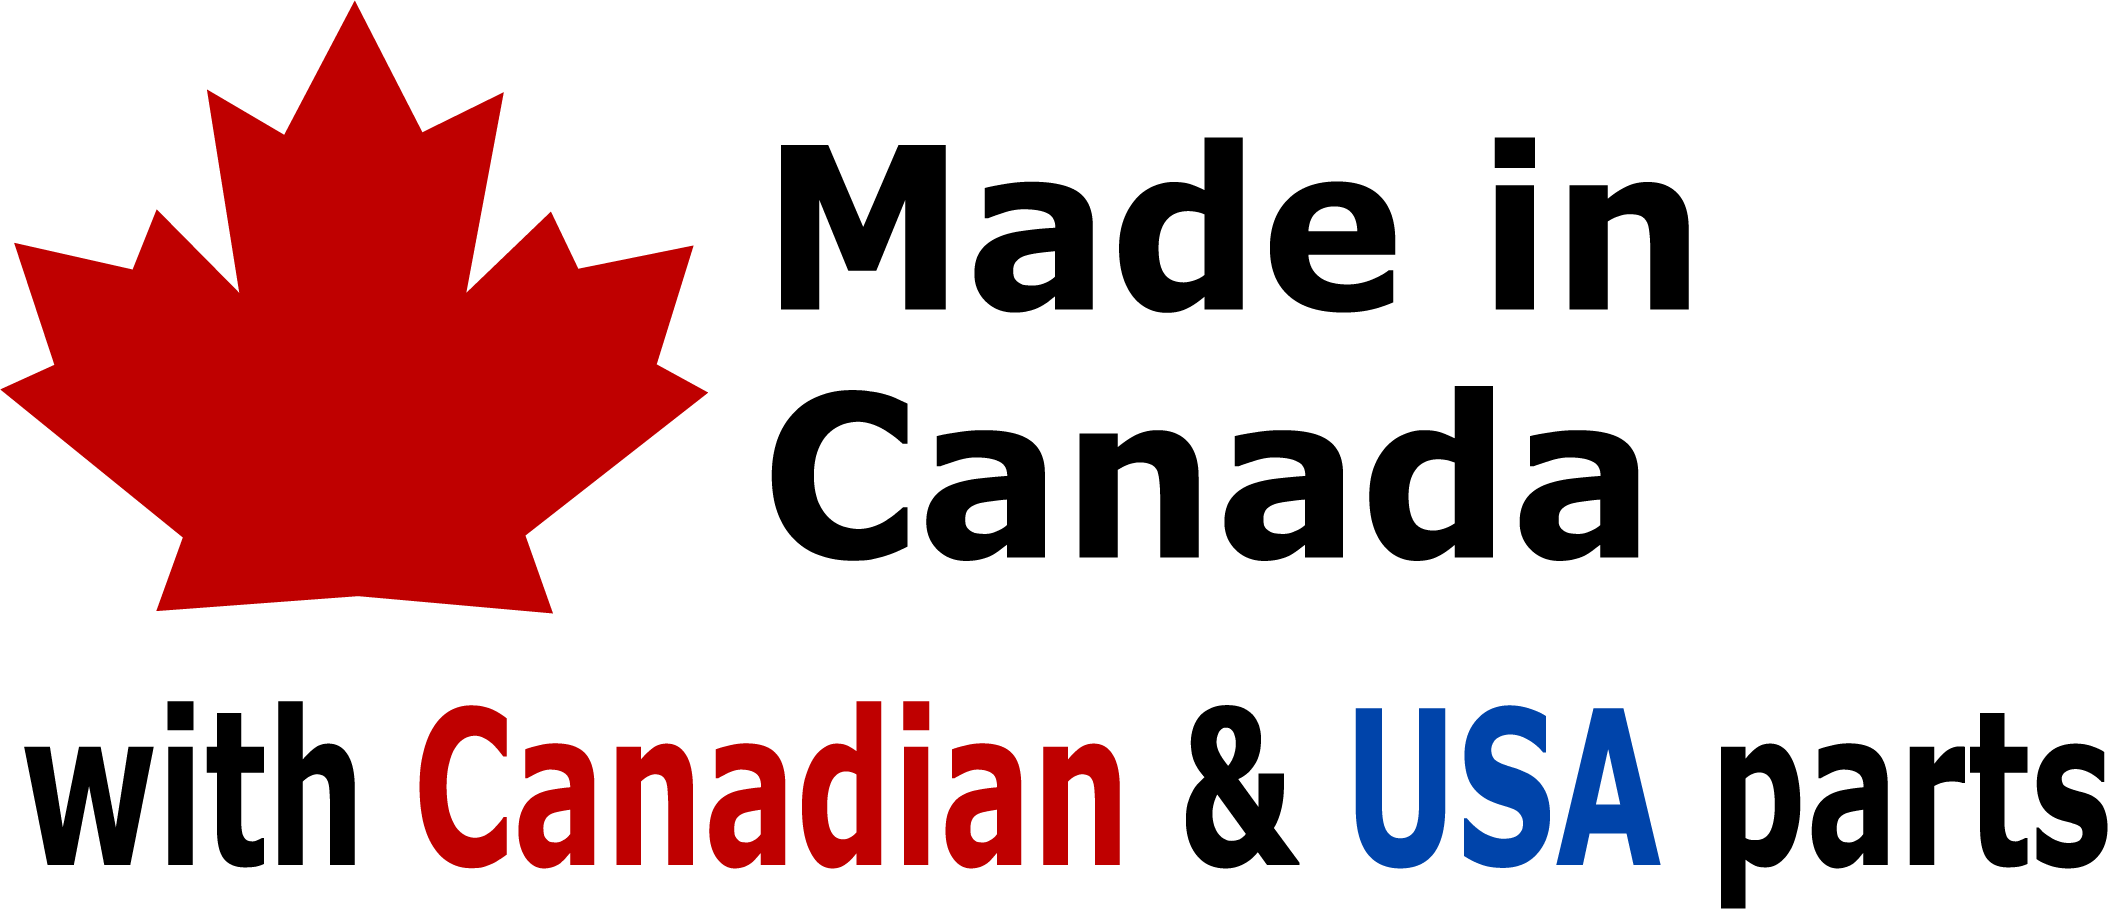 Made in Canada with Canadian and USA parts